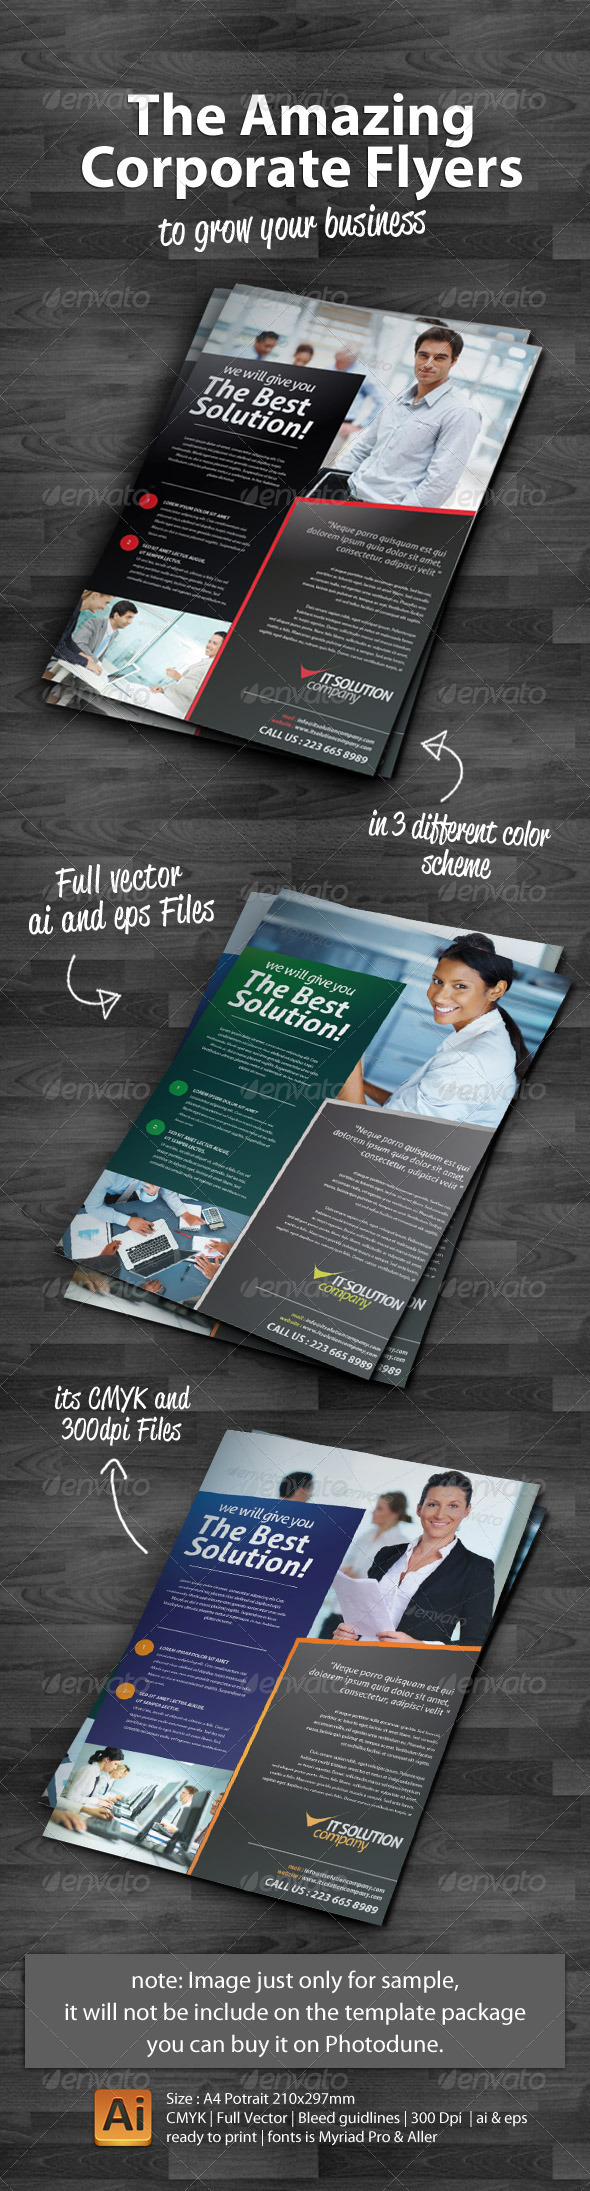 The Amazing Corporate Flyers - Corporate Flyers